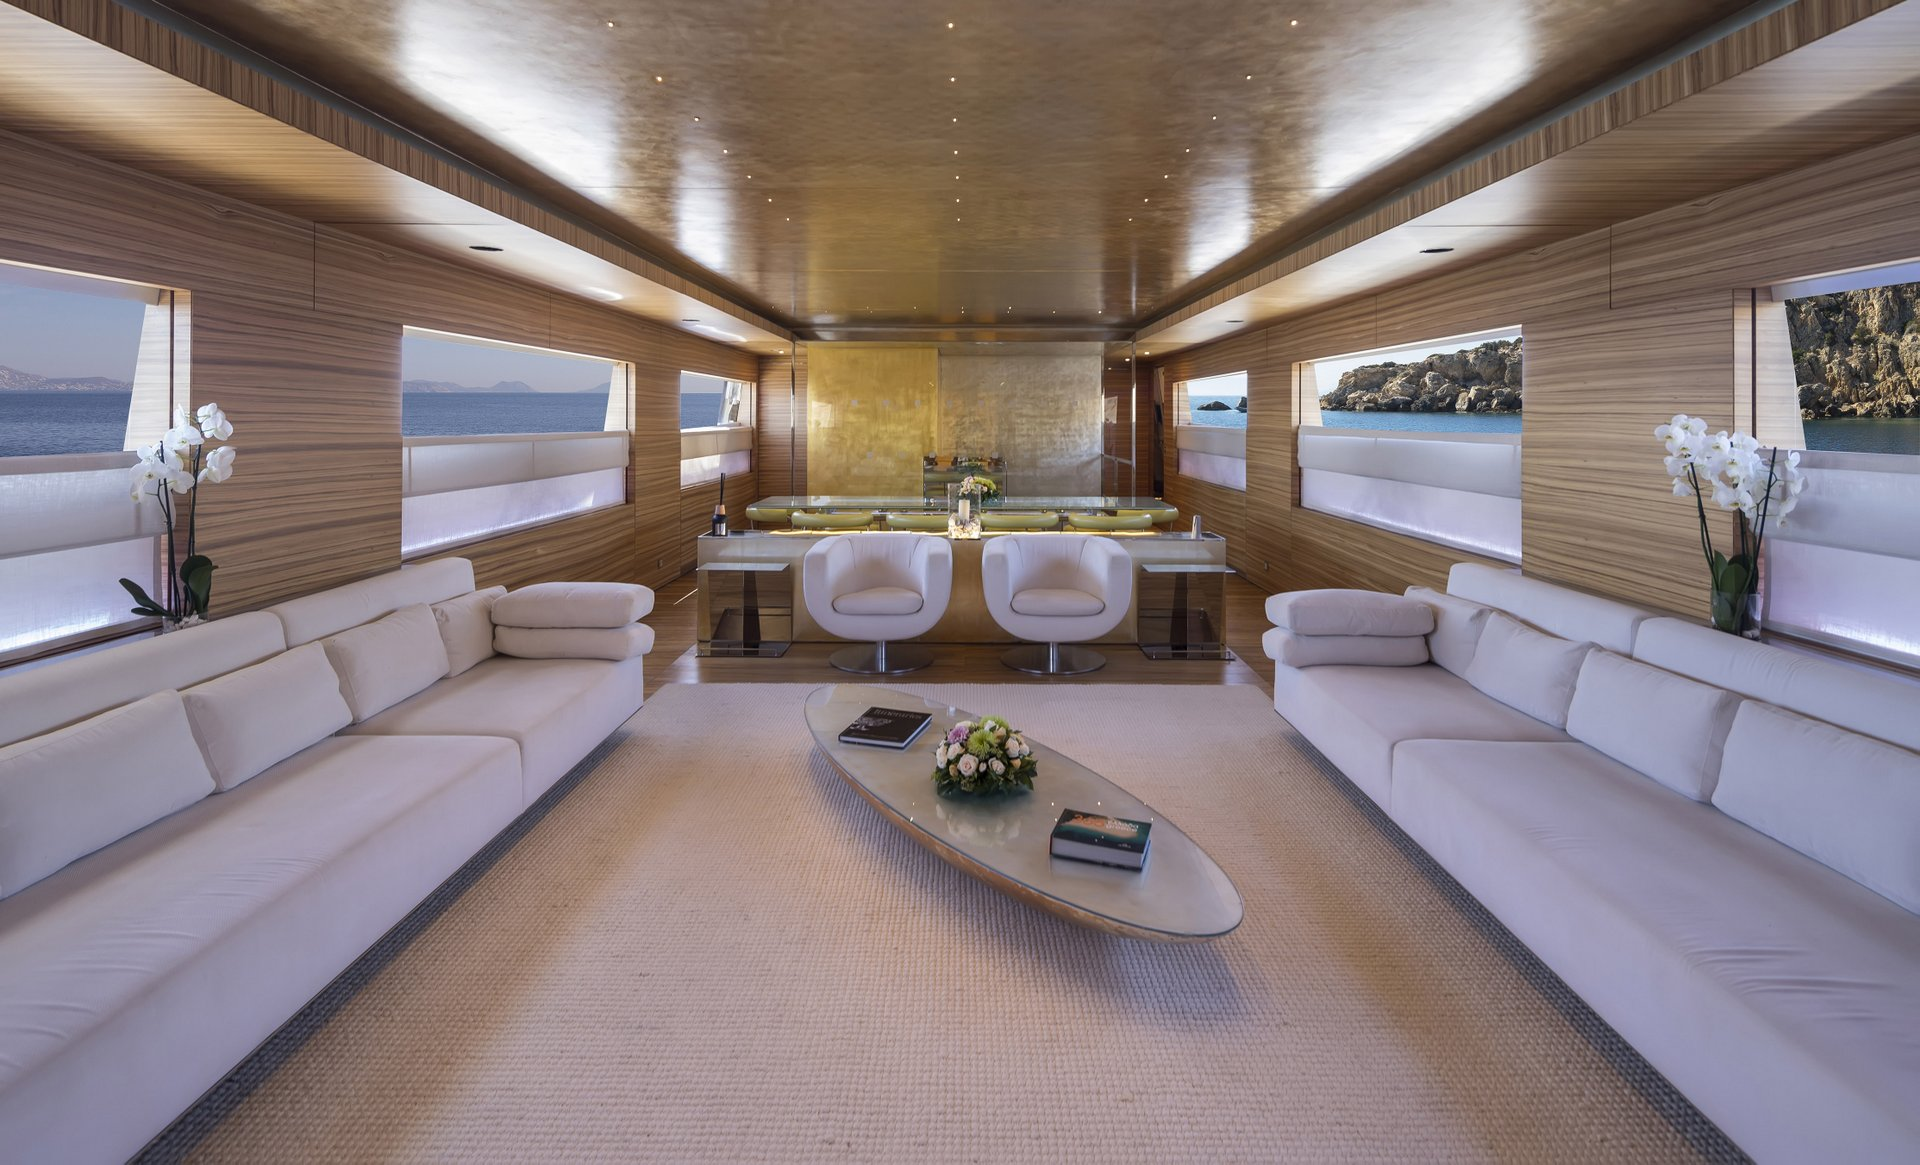 M/Y MABROUK yacht for charter lounge